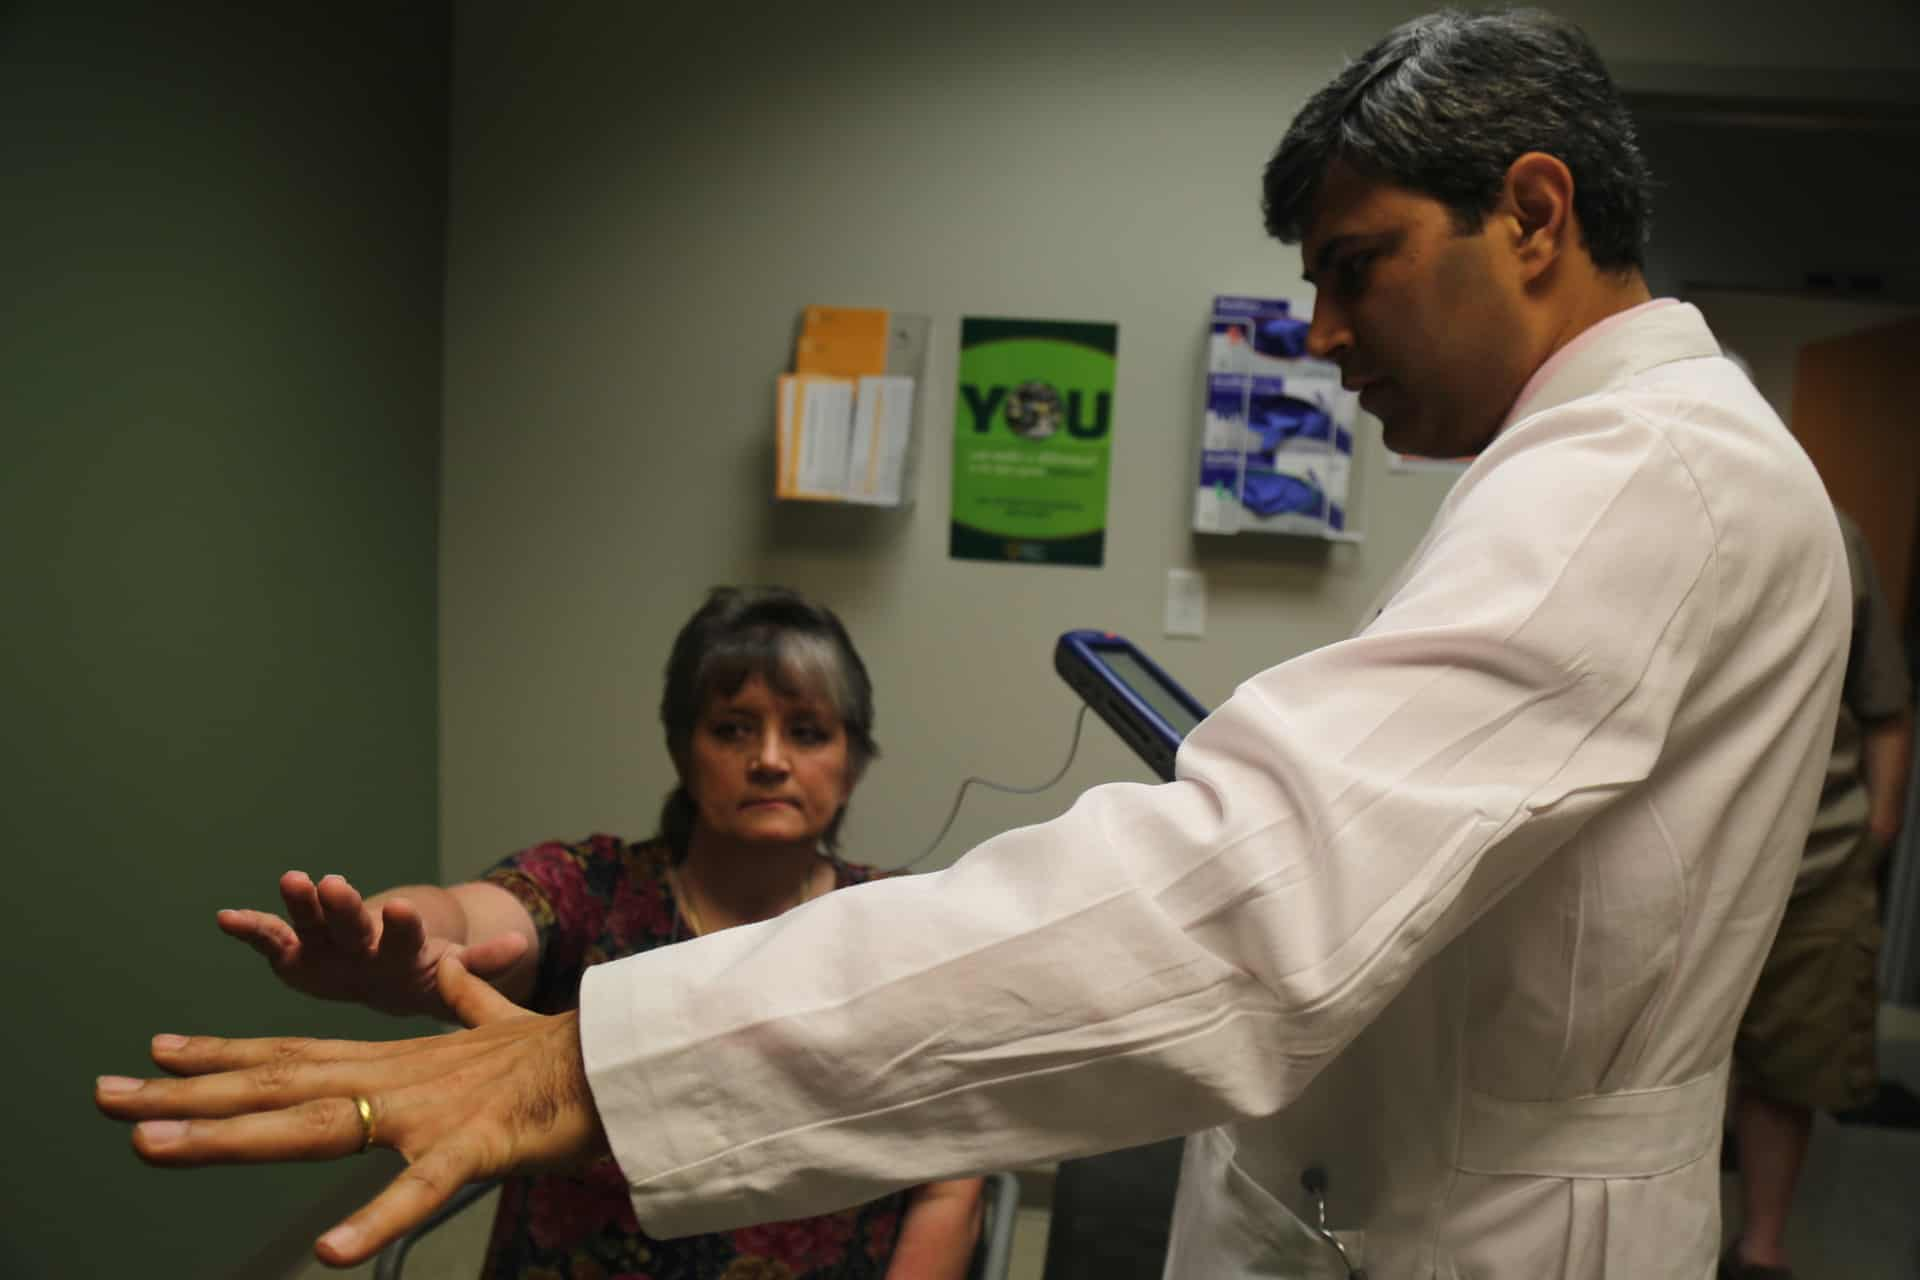 Kimberly Zimmer visits neurologist Rohit Dhall, M.D., to check the results of her deep brain stimulation surgery.